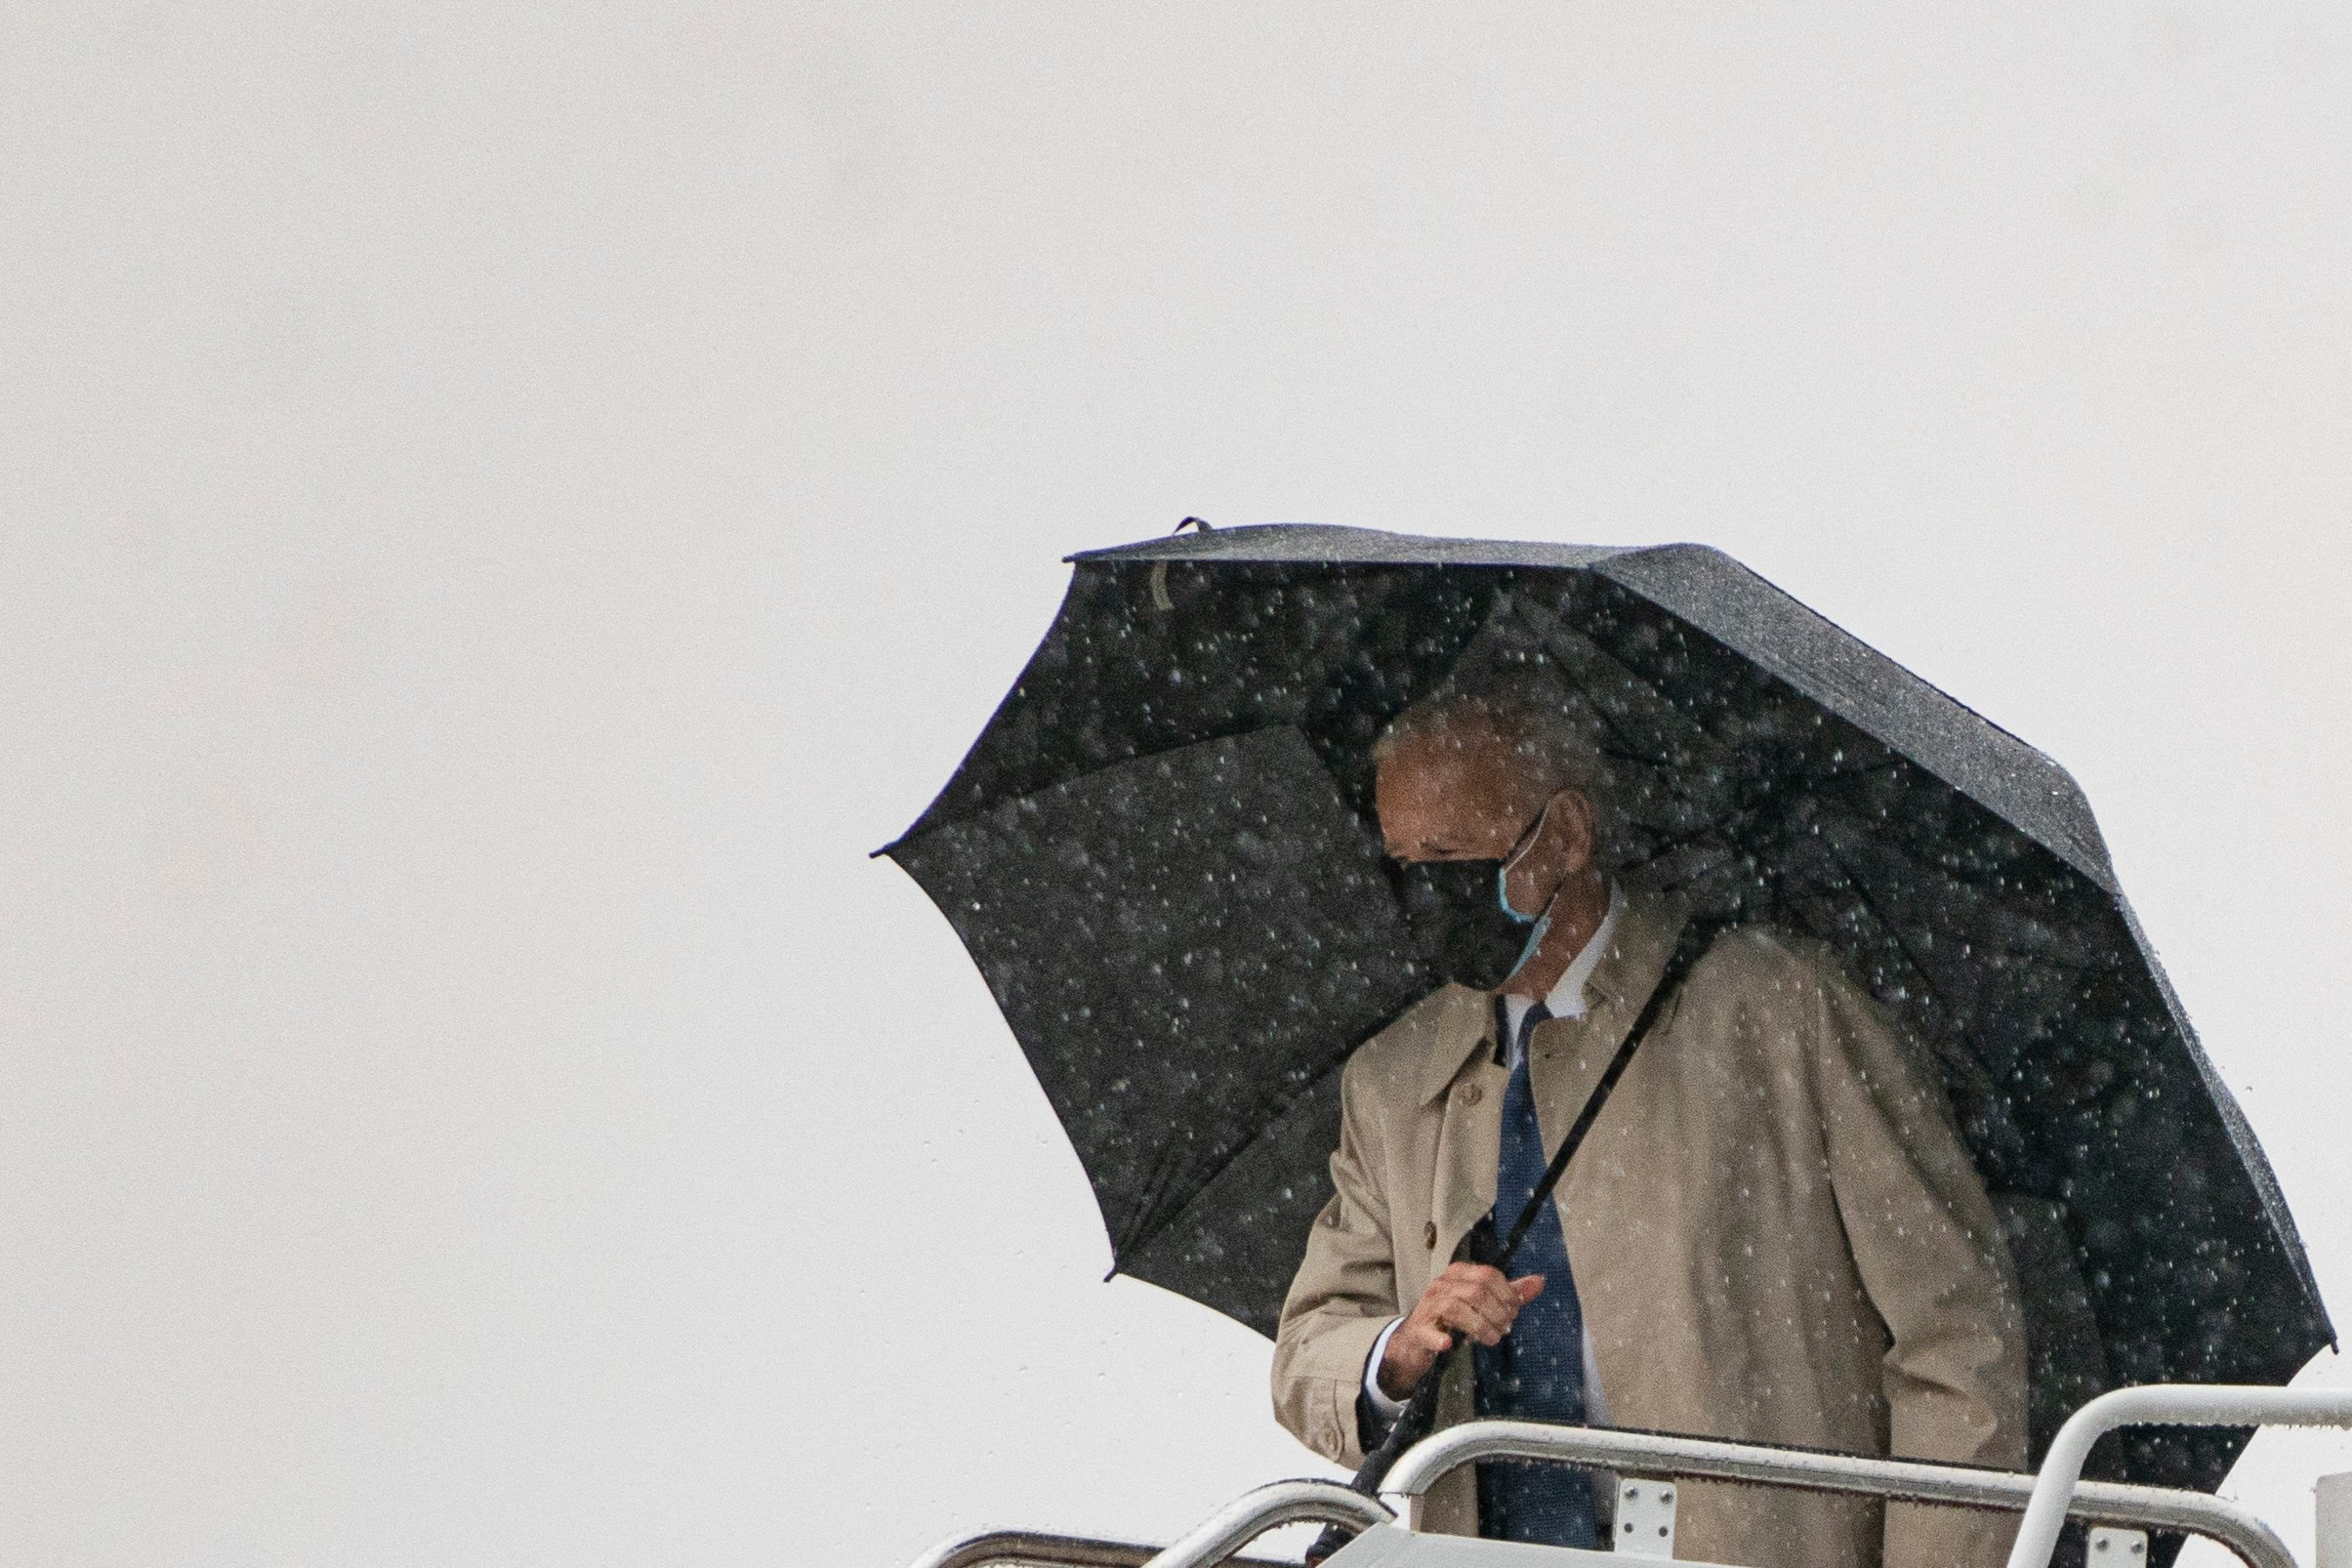 """US President Joe Biden boards Air Force One in the rain at Andrews Air Force Base on March 31, 2021 in Maryland. - US President Joe Biden is traveling to Pittsburgh, Pennsylvania to deliver remarks on his economic vision for the future and the Biden-Harris administration's plan to """"Build Back Better"""" for the American people. (Photo by ALEX EDELMAN/AFP via Getty Images)"""